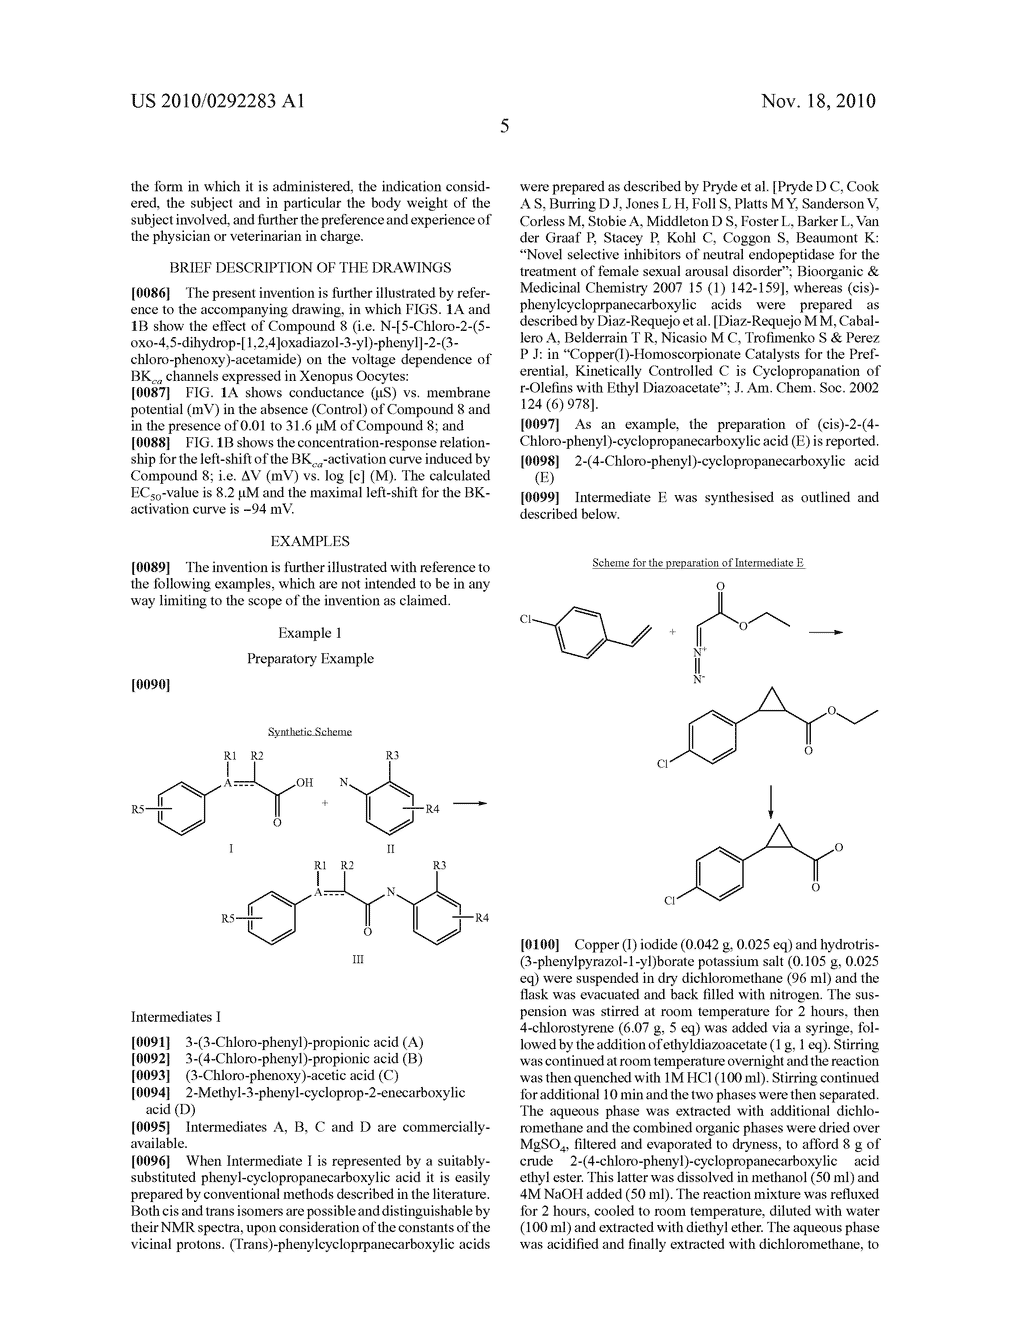 NOVEL PHENYL-ACETAMIDE AND PHENYL-PROPIONAMIDE DERIVATIVES USEFUL AS POTASSIUM CHANNEL MODULATORS - diagram, schematic, and image 07